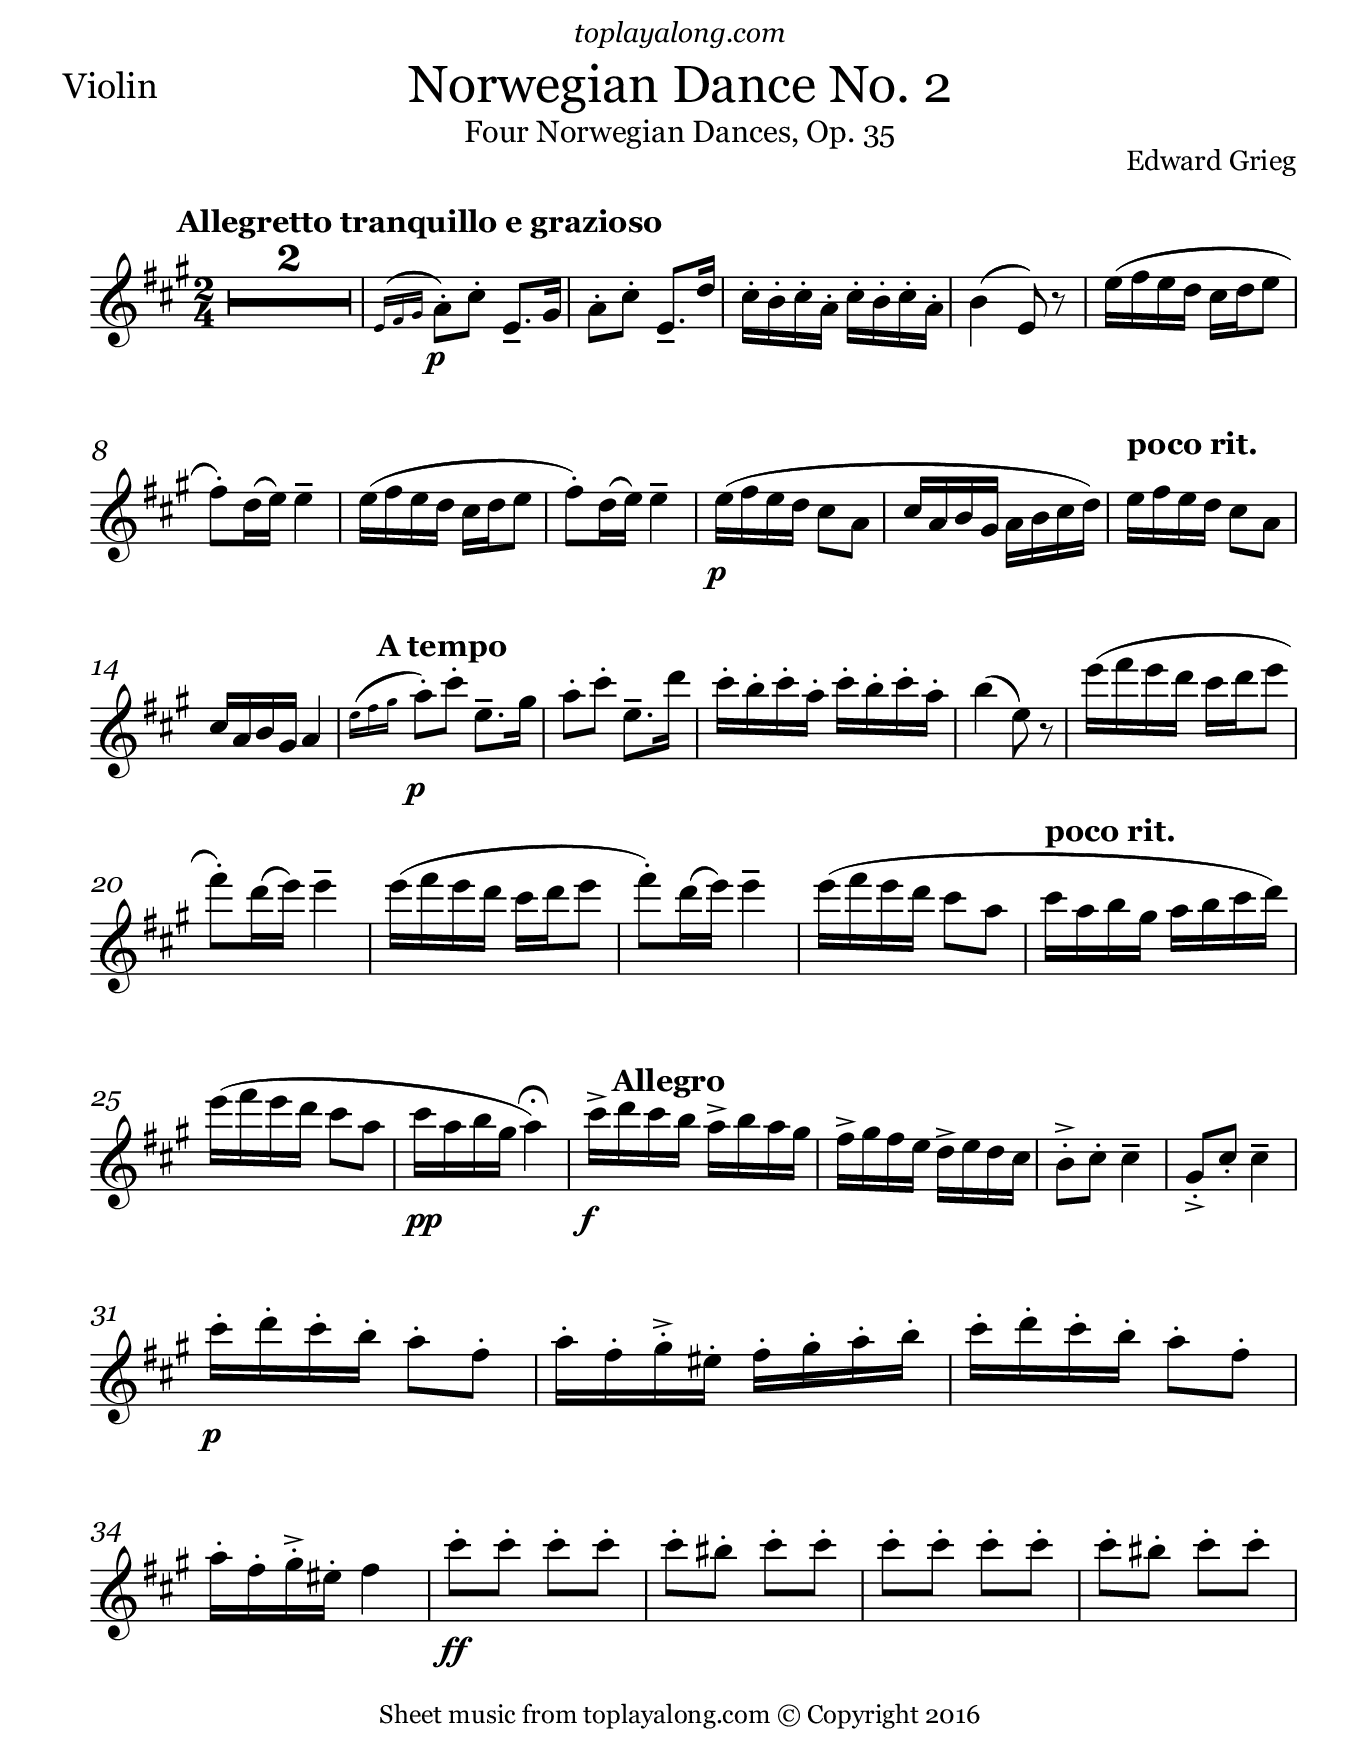 Norwegian Dance No. 2 by Grieg. Sheet music for Violin, page 1.